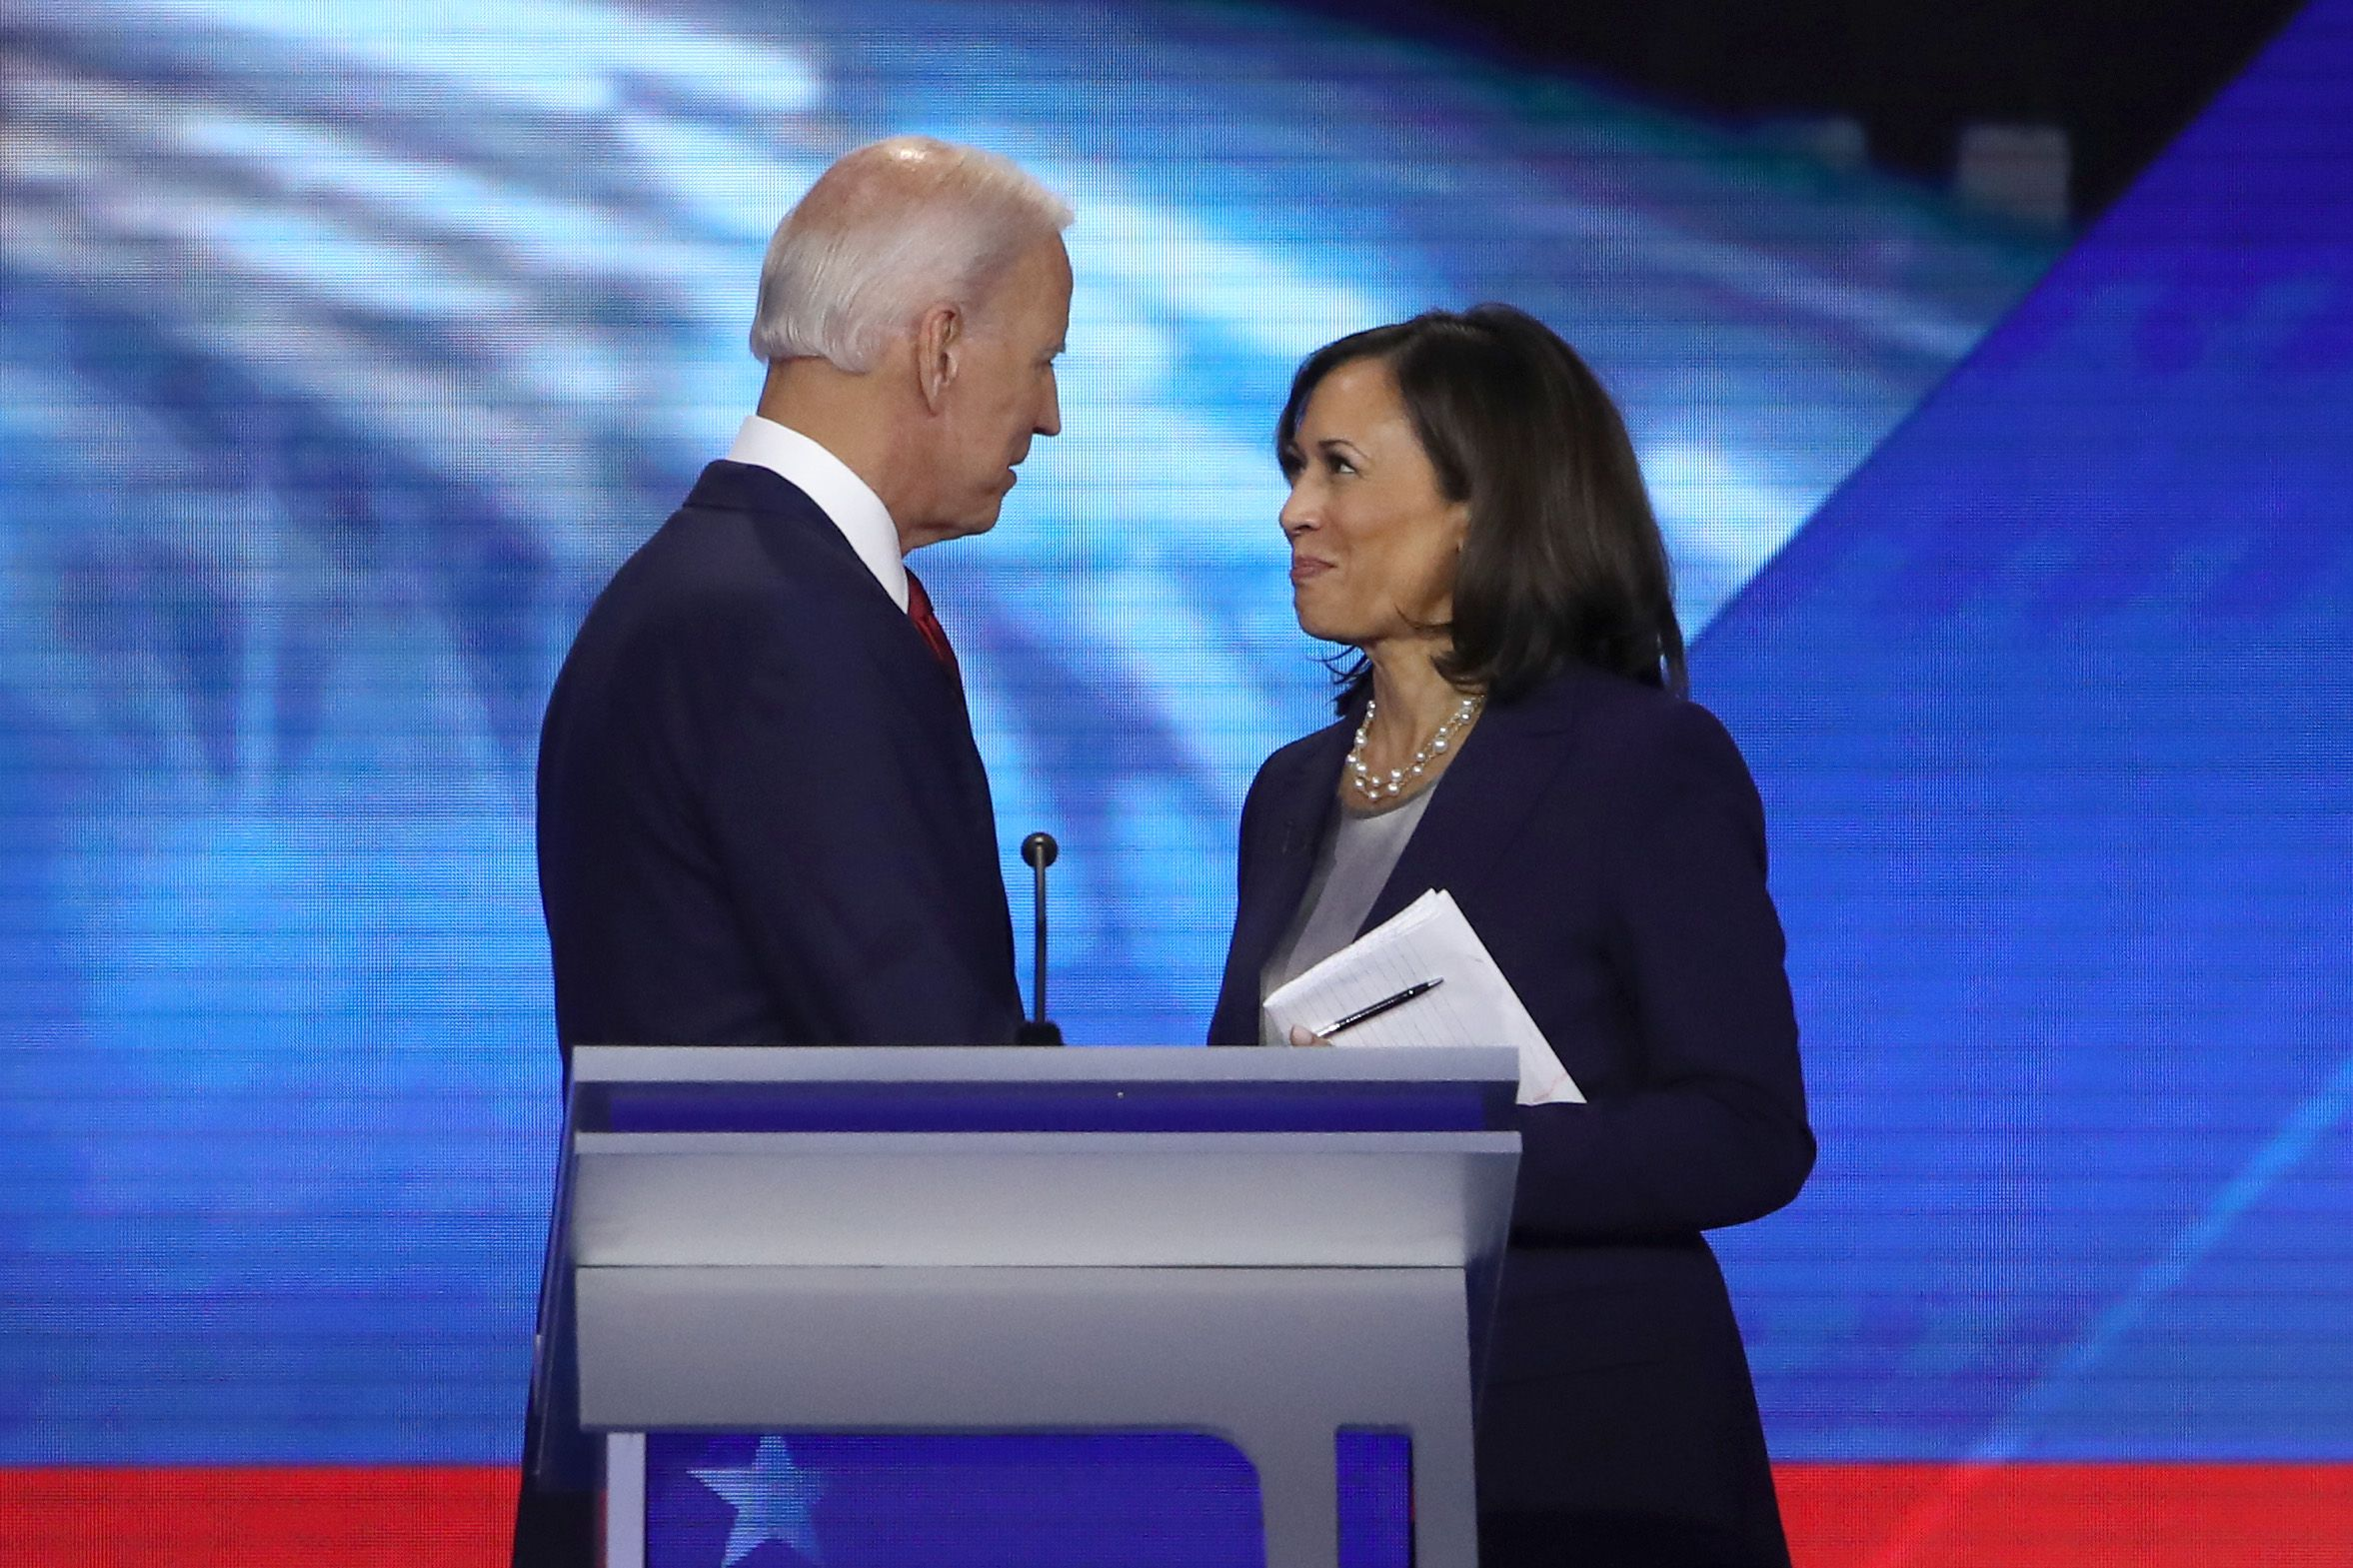 Joe Biden Kamala Harris Celebrate Their Election 2020 Victoria On Twitter